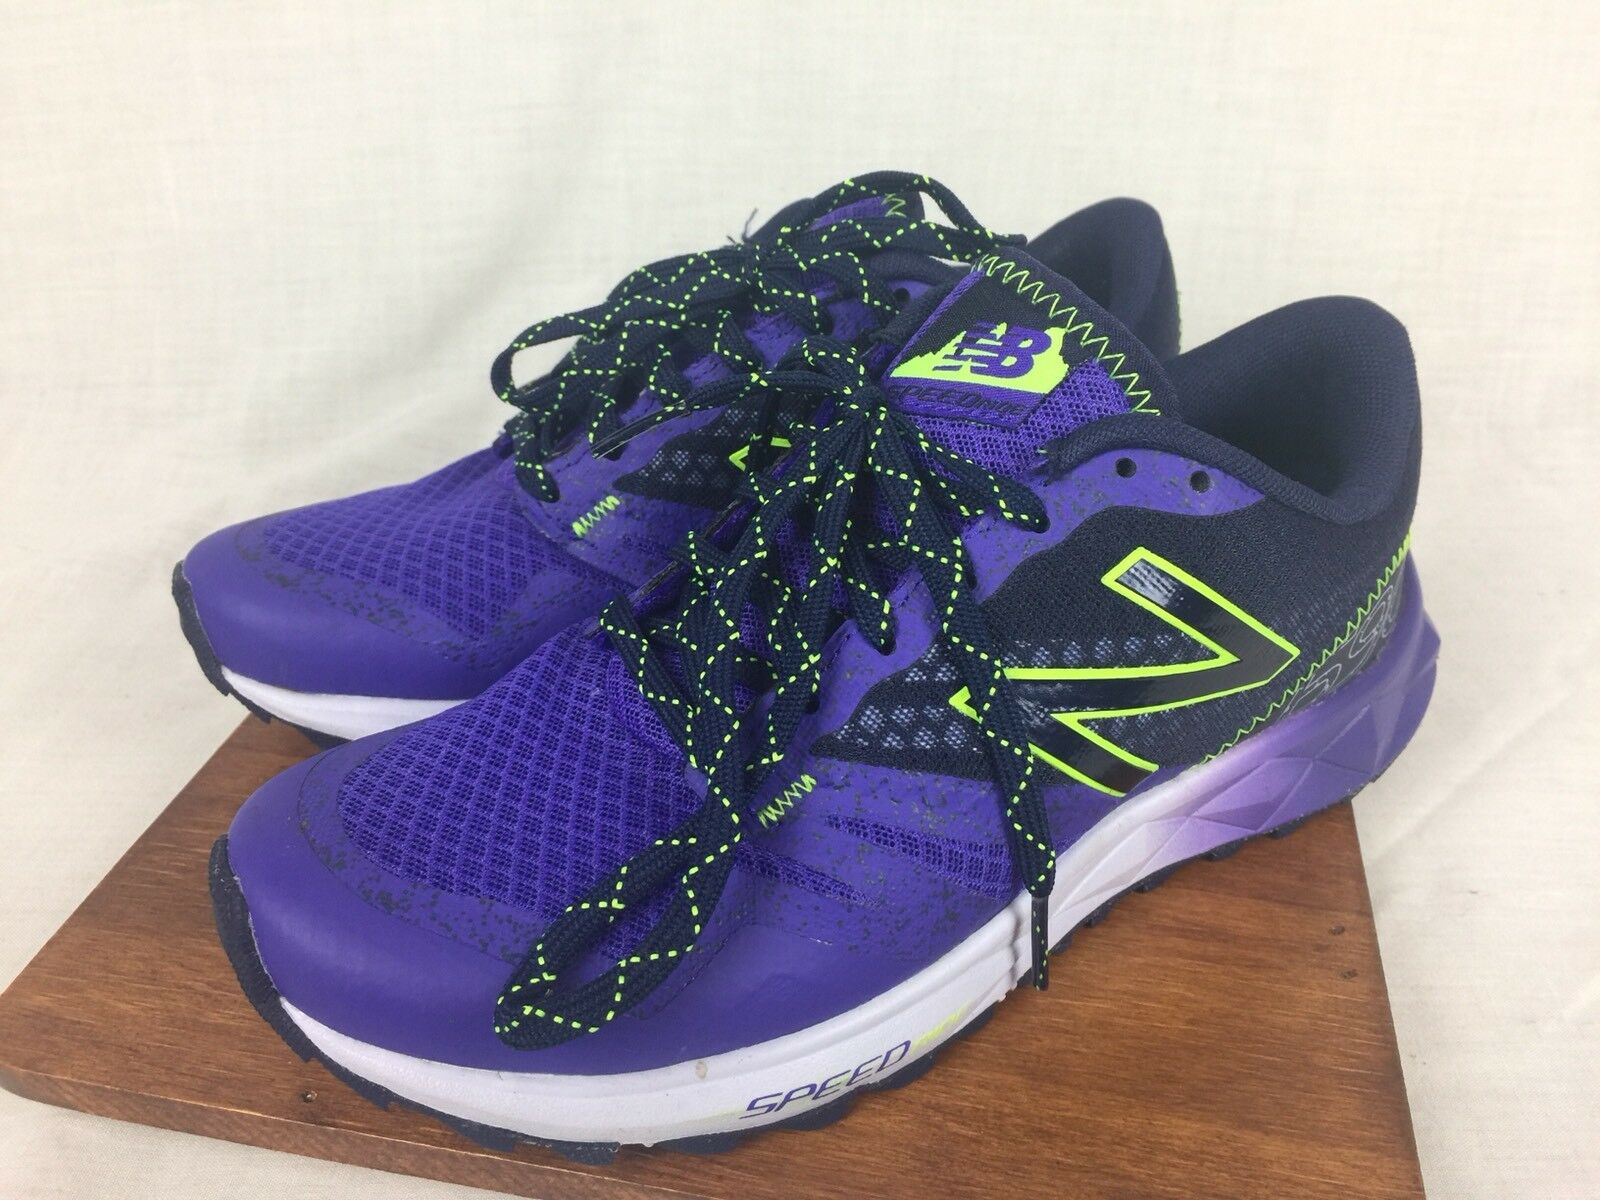 New Balance 690 At Speed Ride Womens Athletic Running shoes Green Purple 6.5